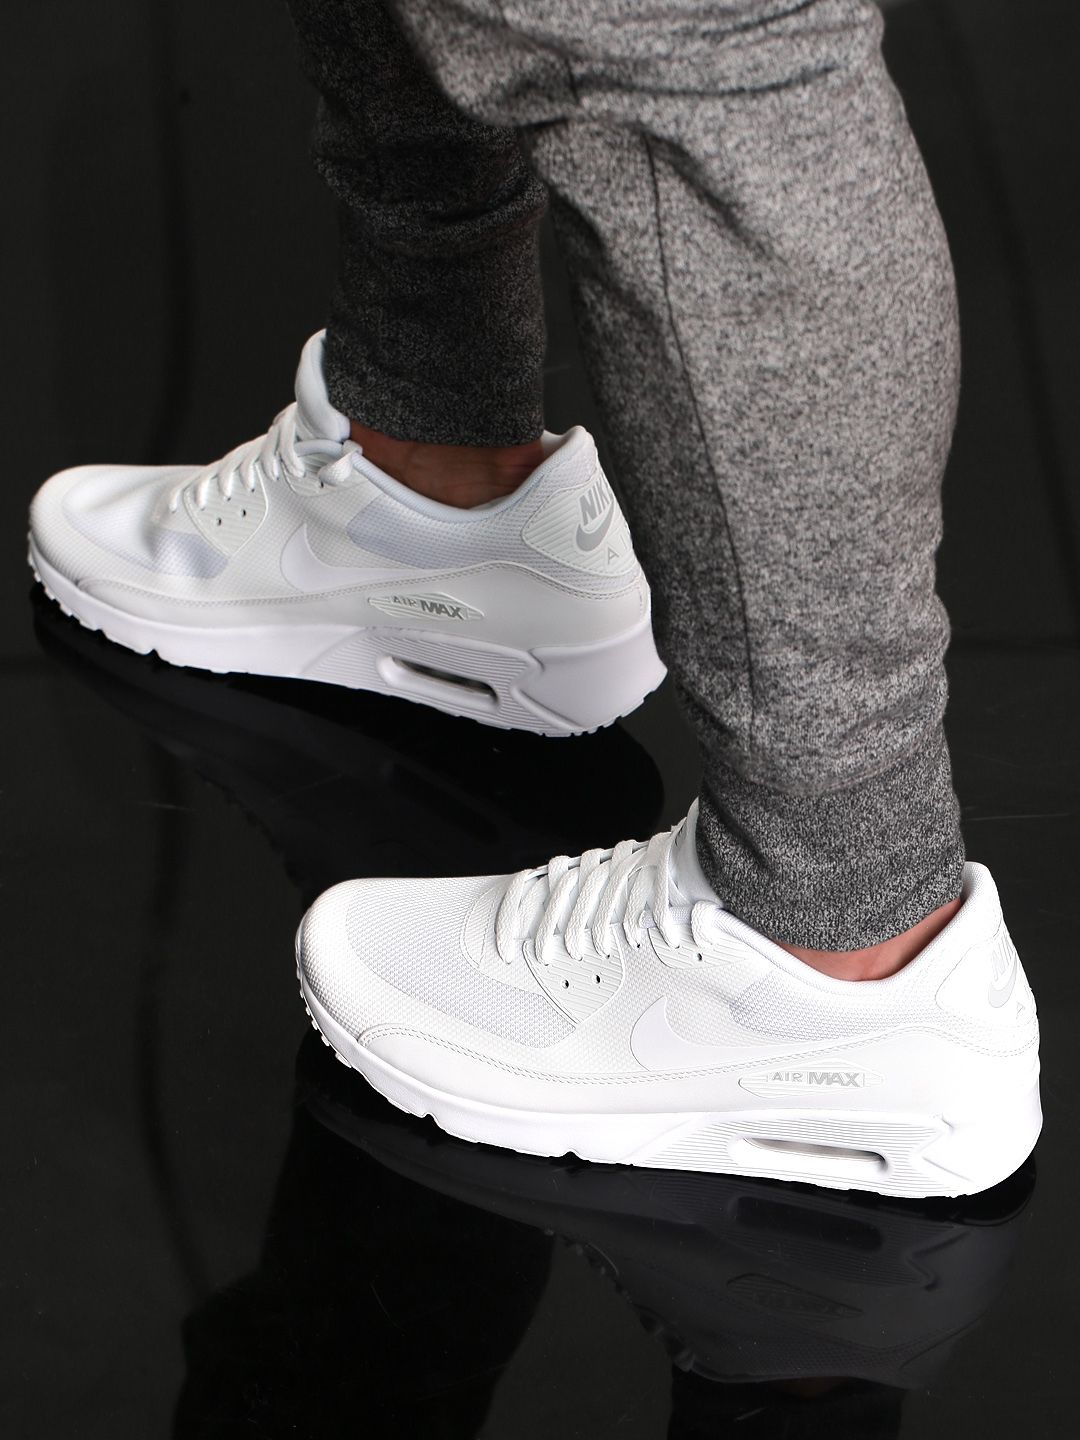 half off 5ee26 7980b Nike Men White Air Max 90 Ultra 2.0 Essential Sneakers